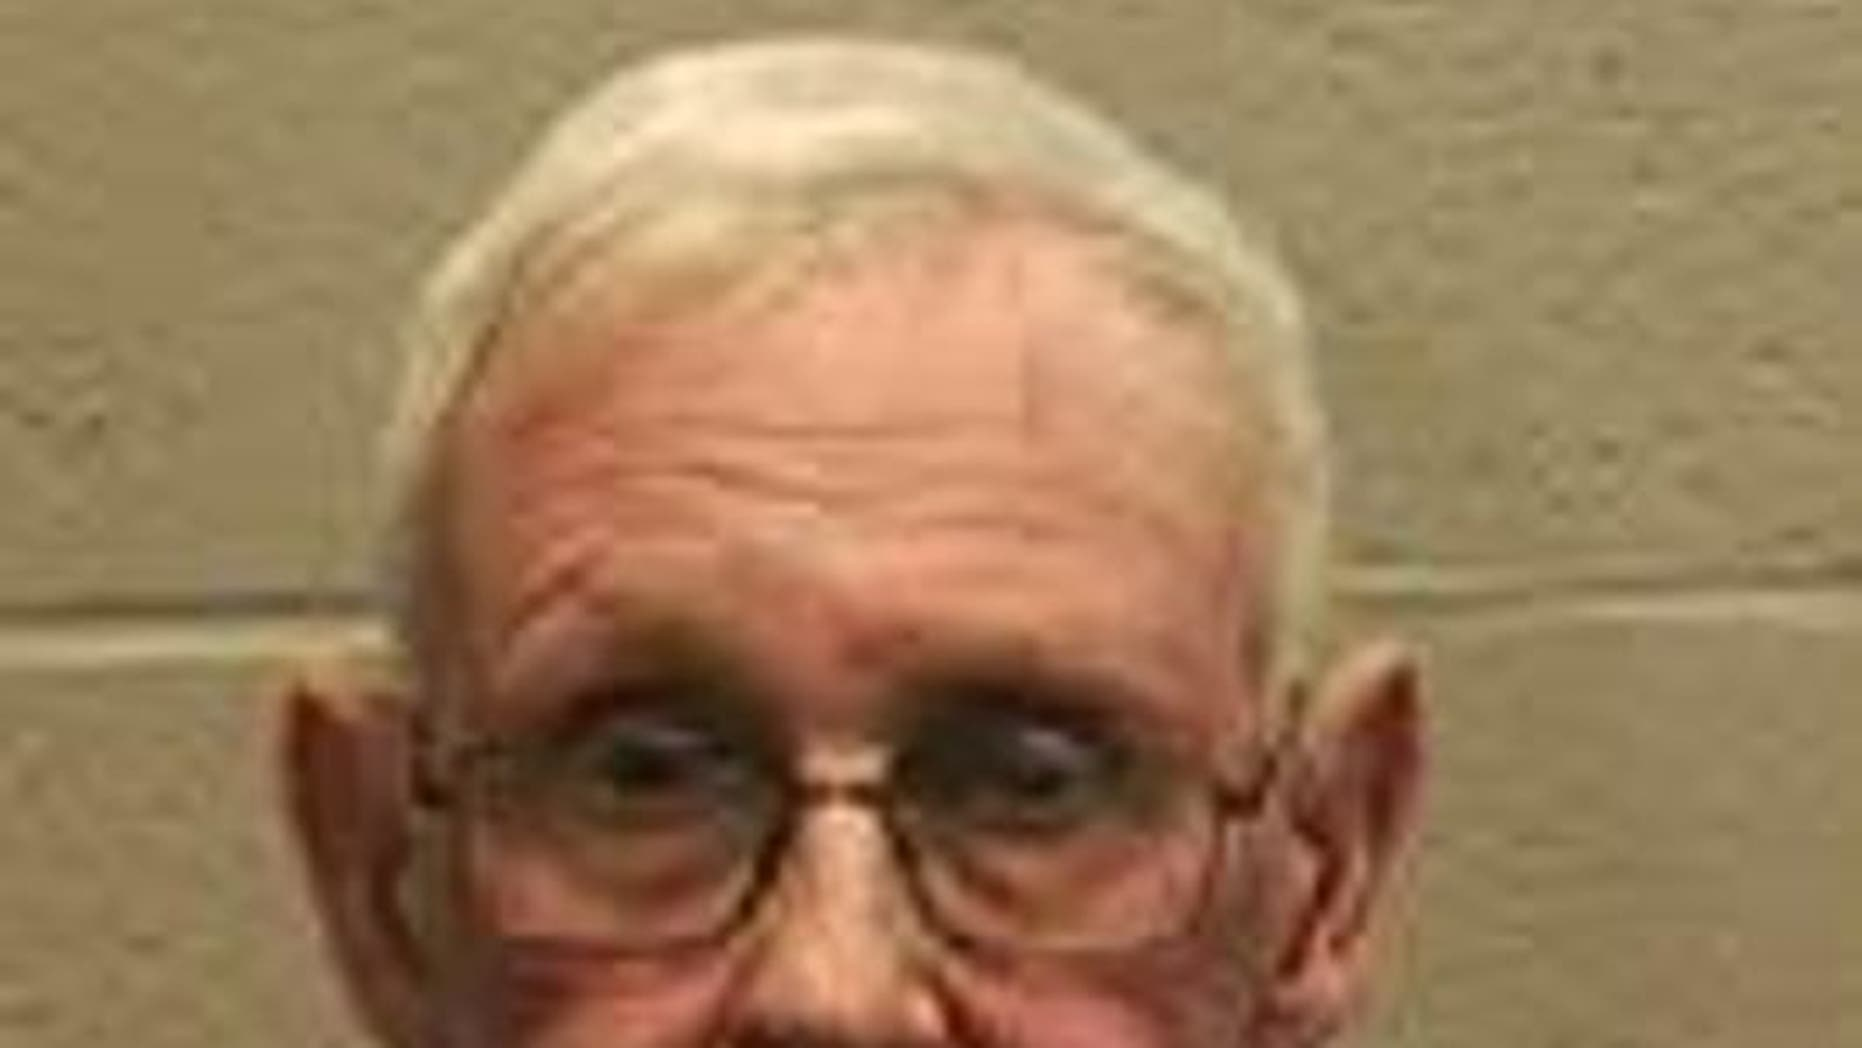 B.T. Adams, 75, faces charges after allegedly sexually assaulting a 3-year-old girl.